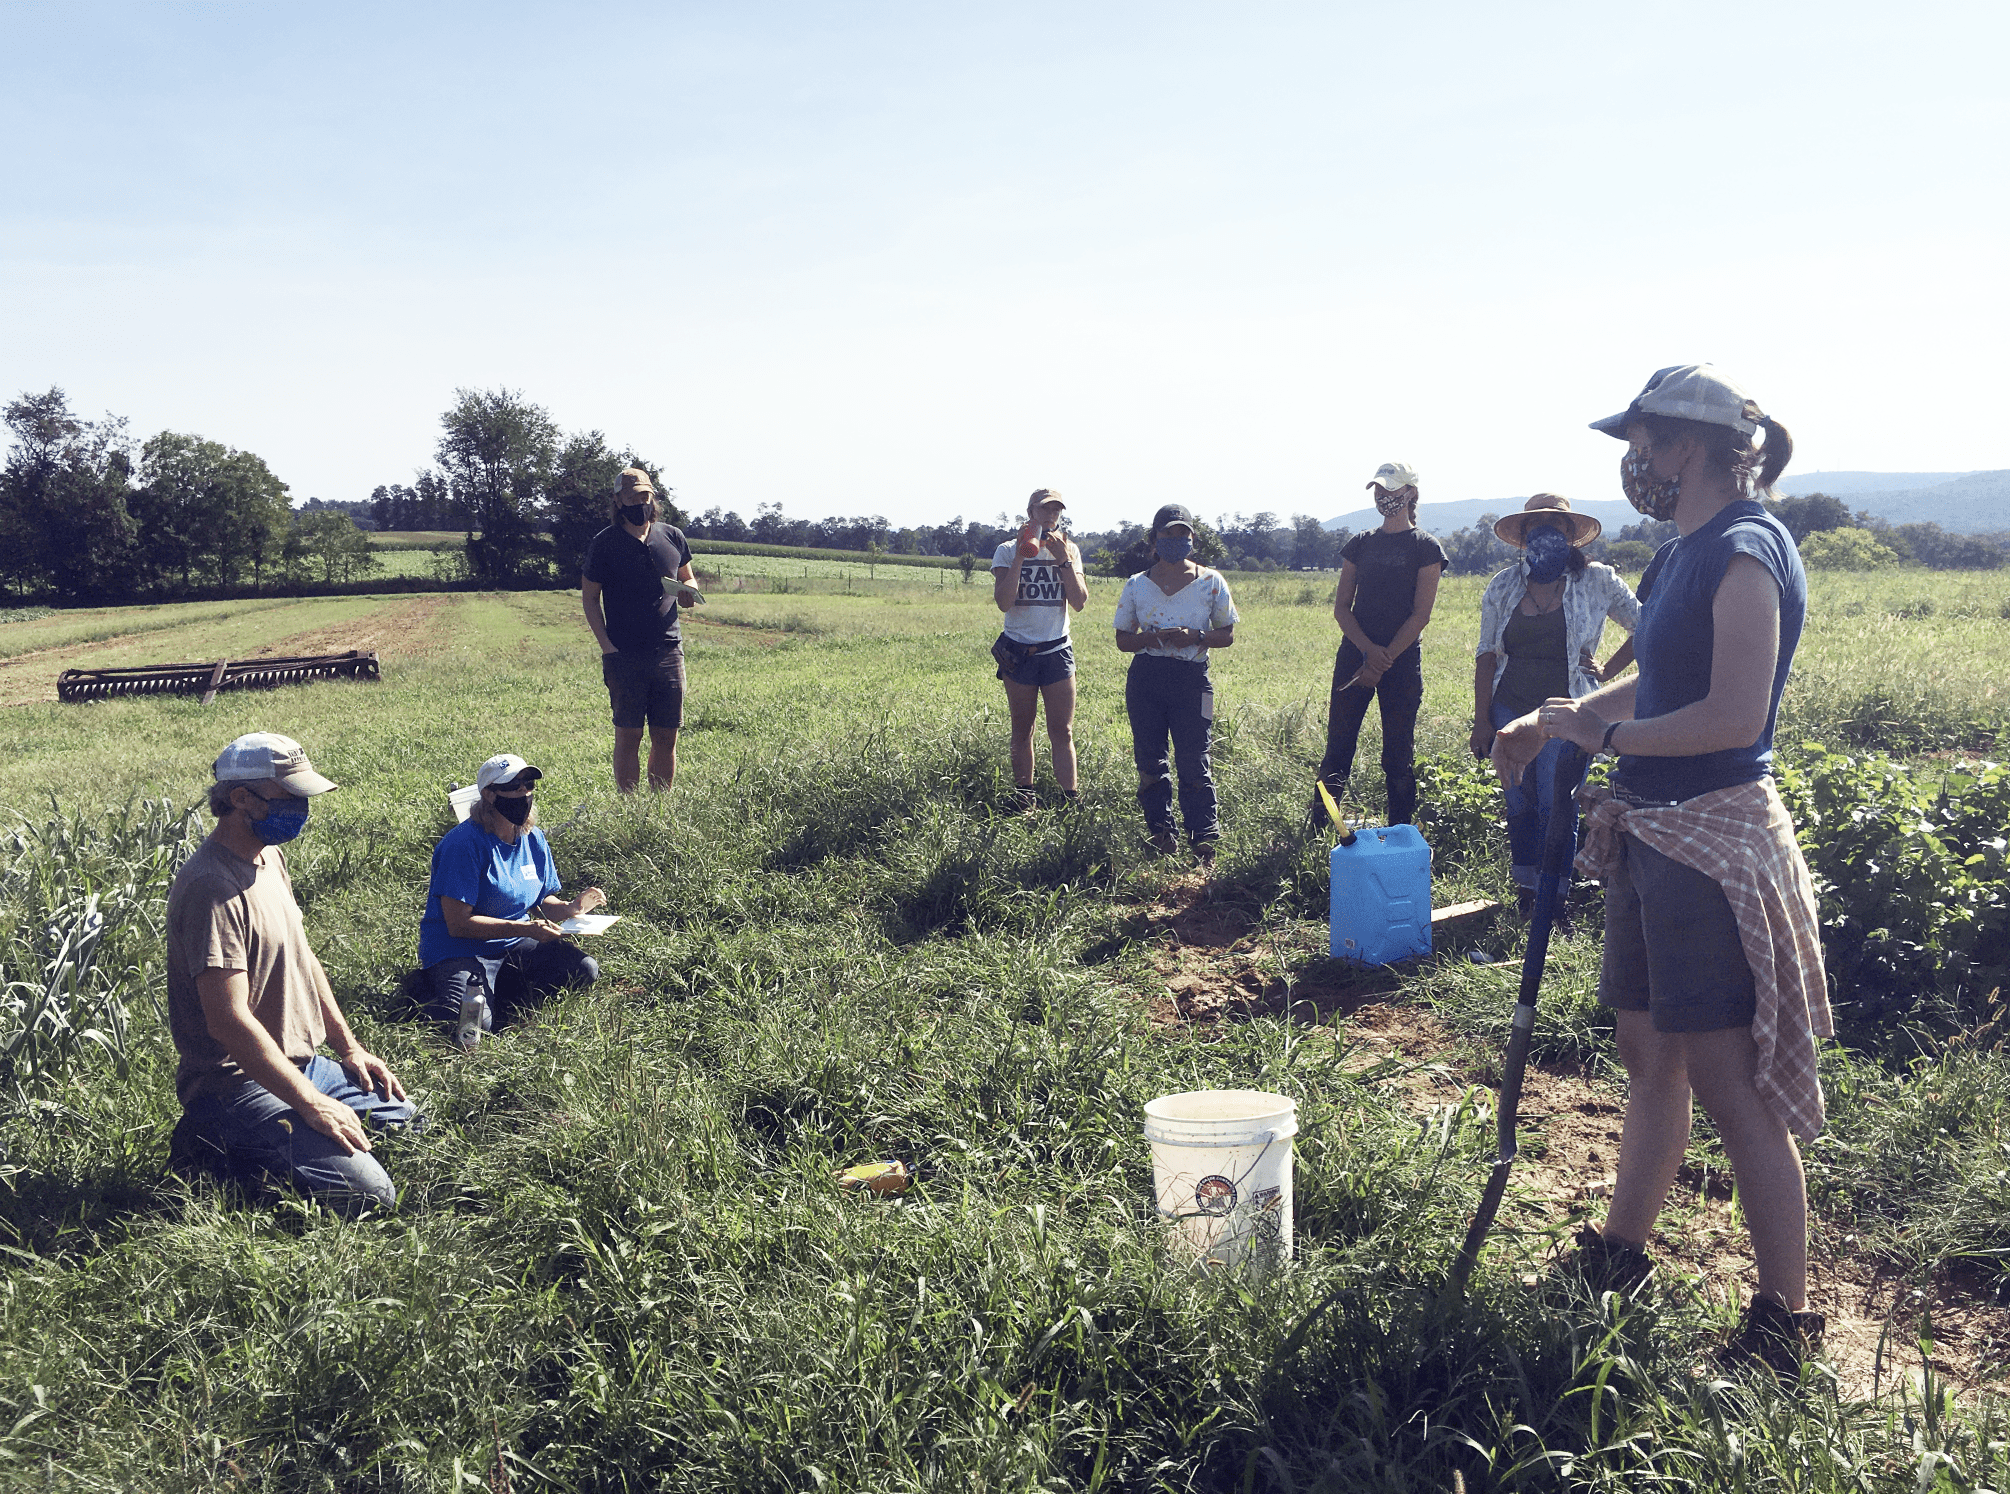 Pasa Research Coordinator Sarah Bay Nawa explains our soil sampling protocols to collaborators from Stroud Water Research Center and Penn State University at Dickinson College Farm.